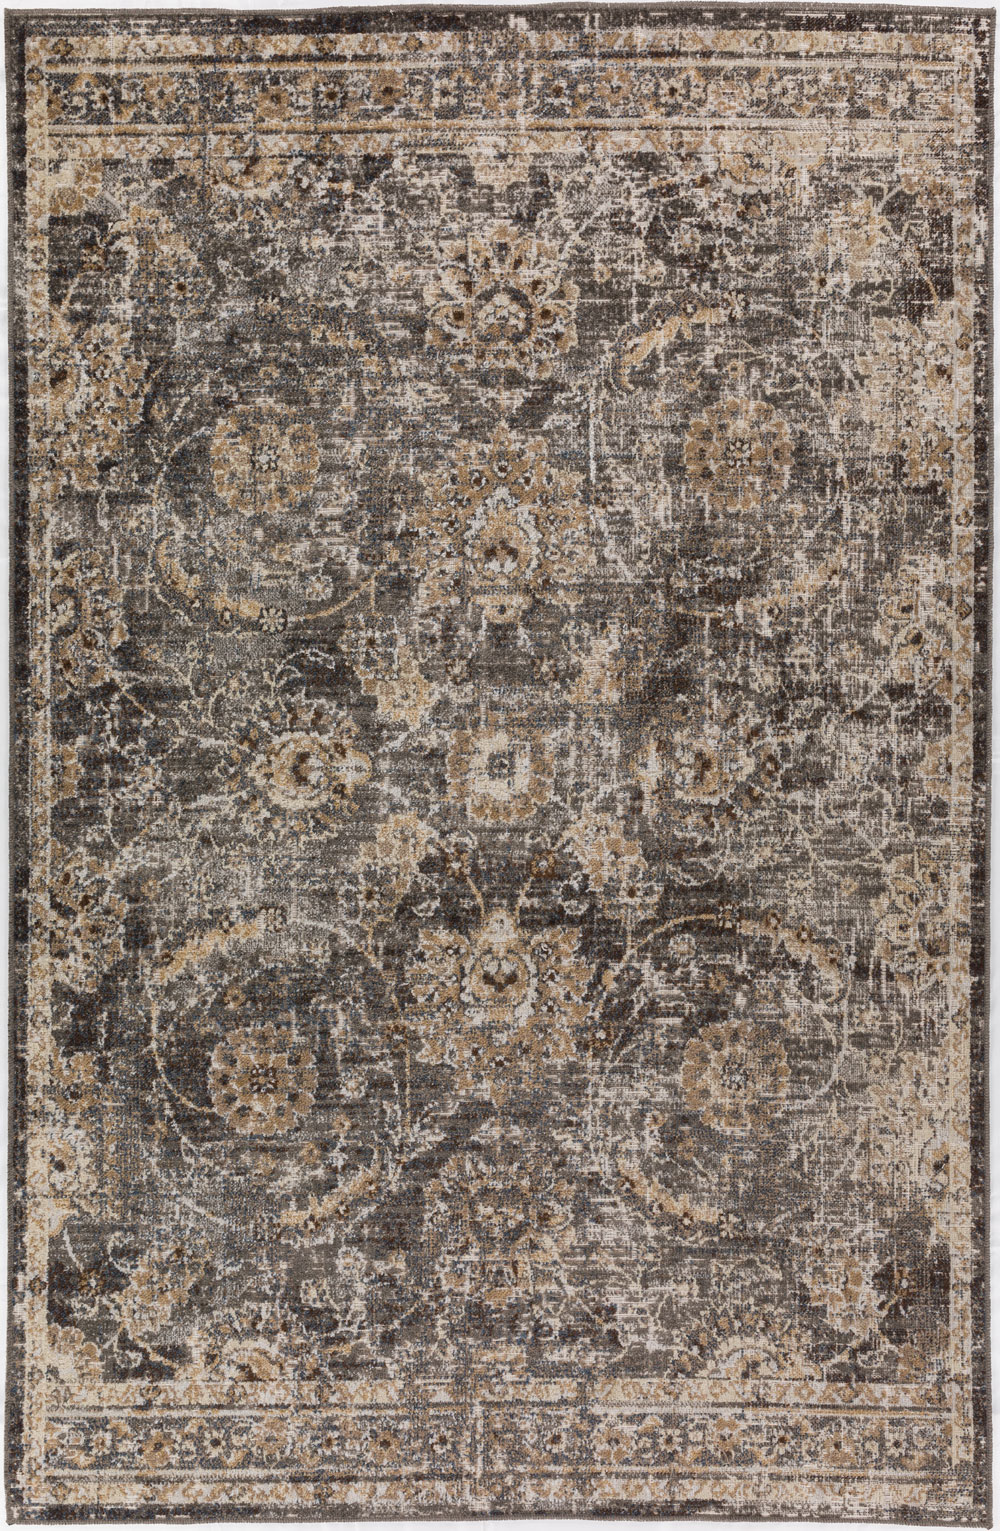 Dalyn Mercier MR2 Pewter Rug